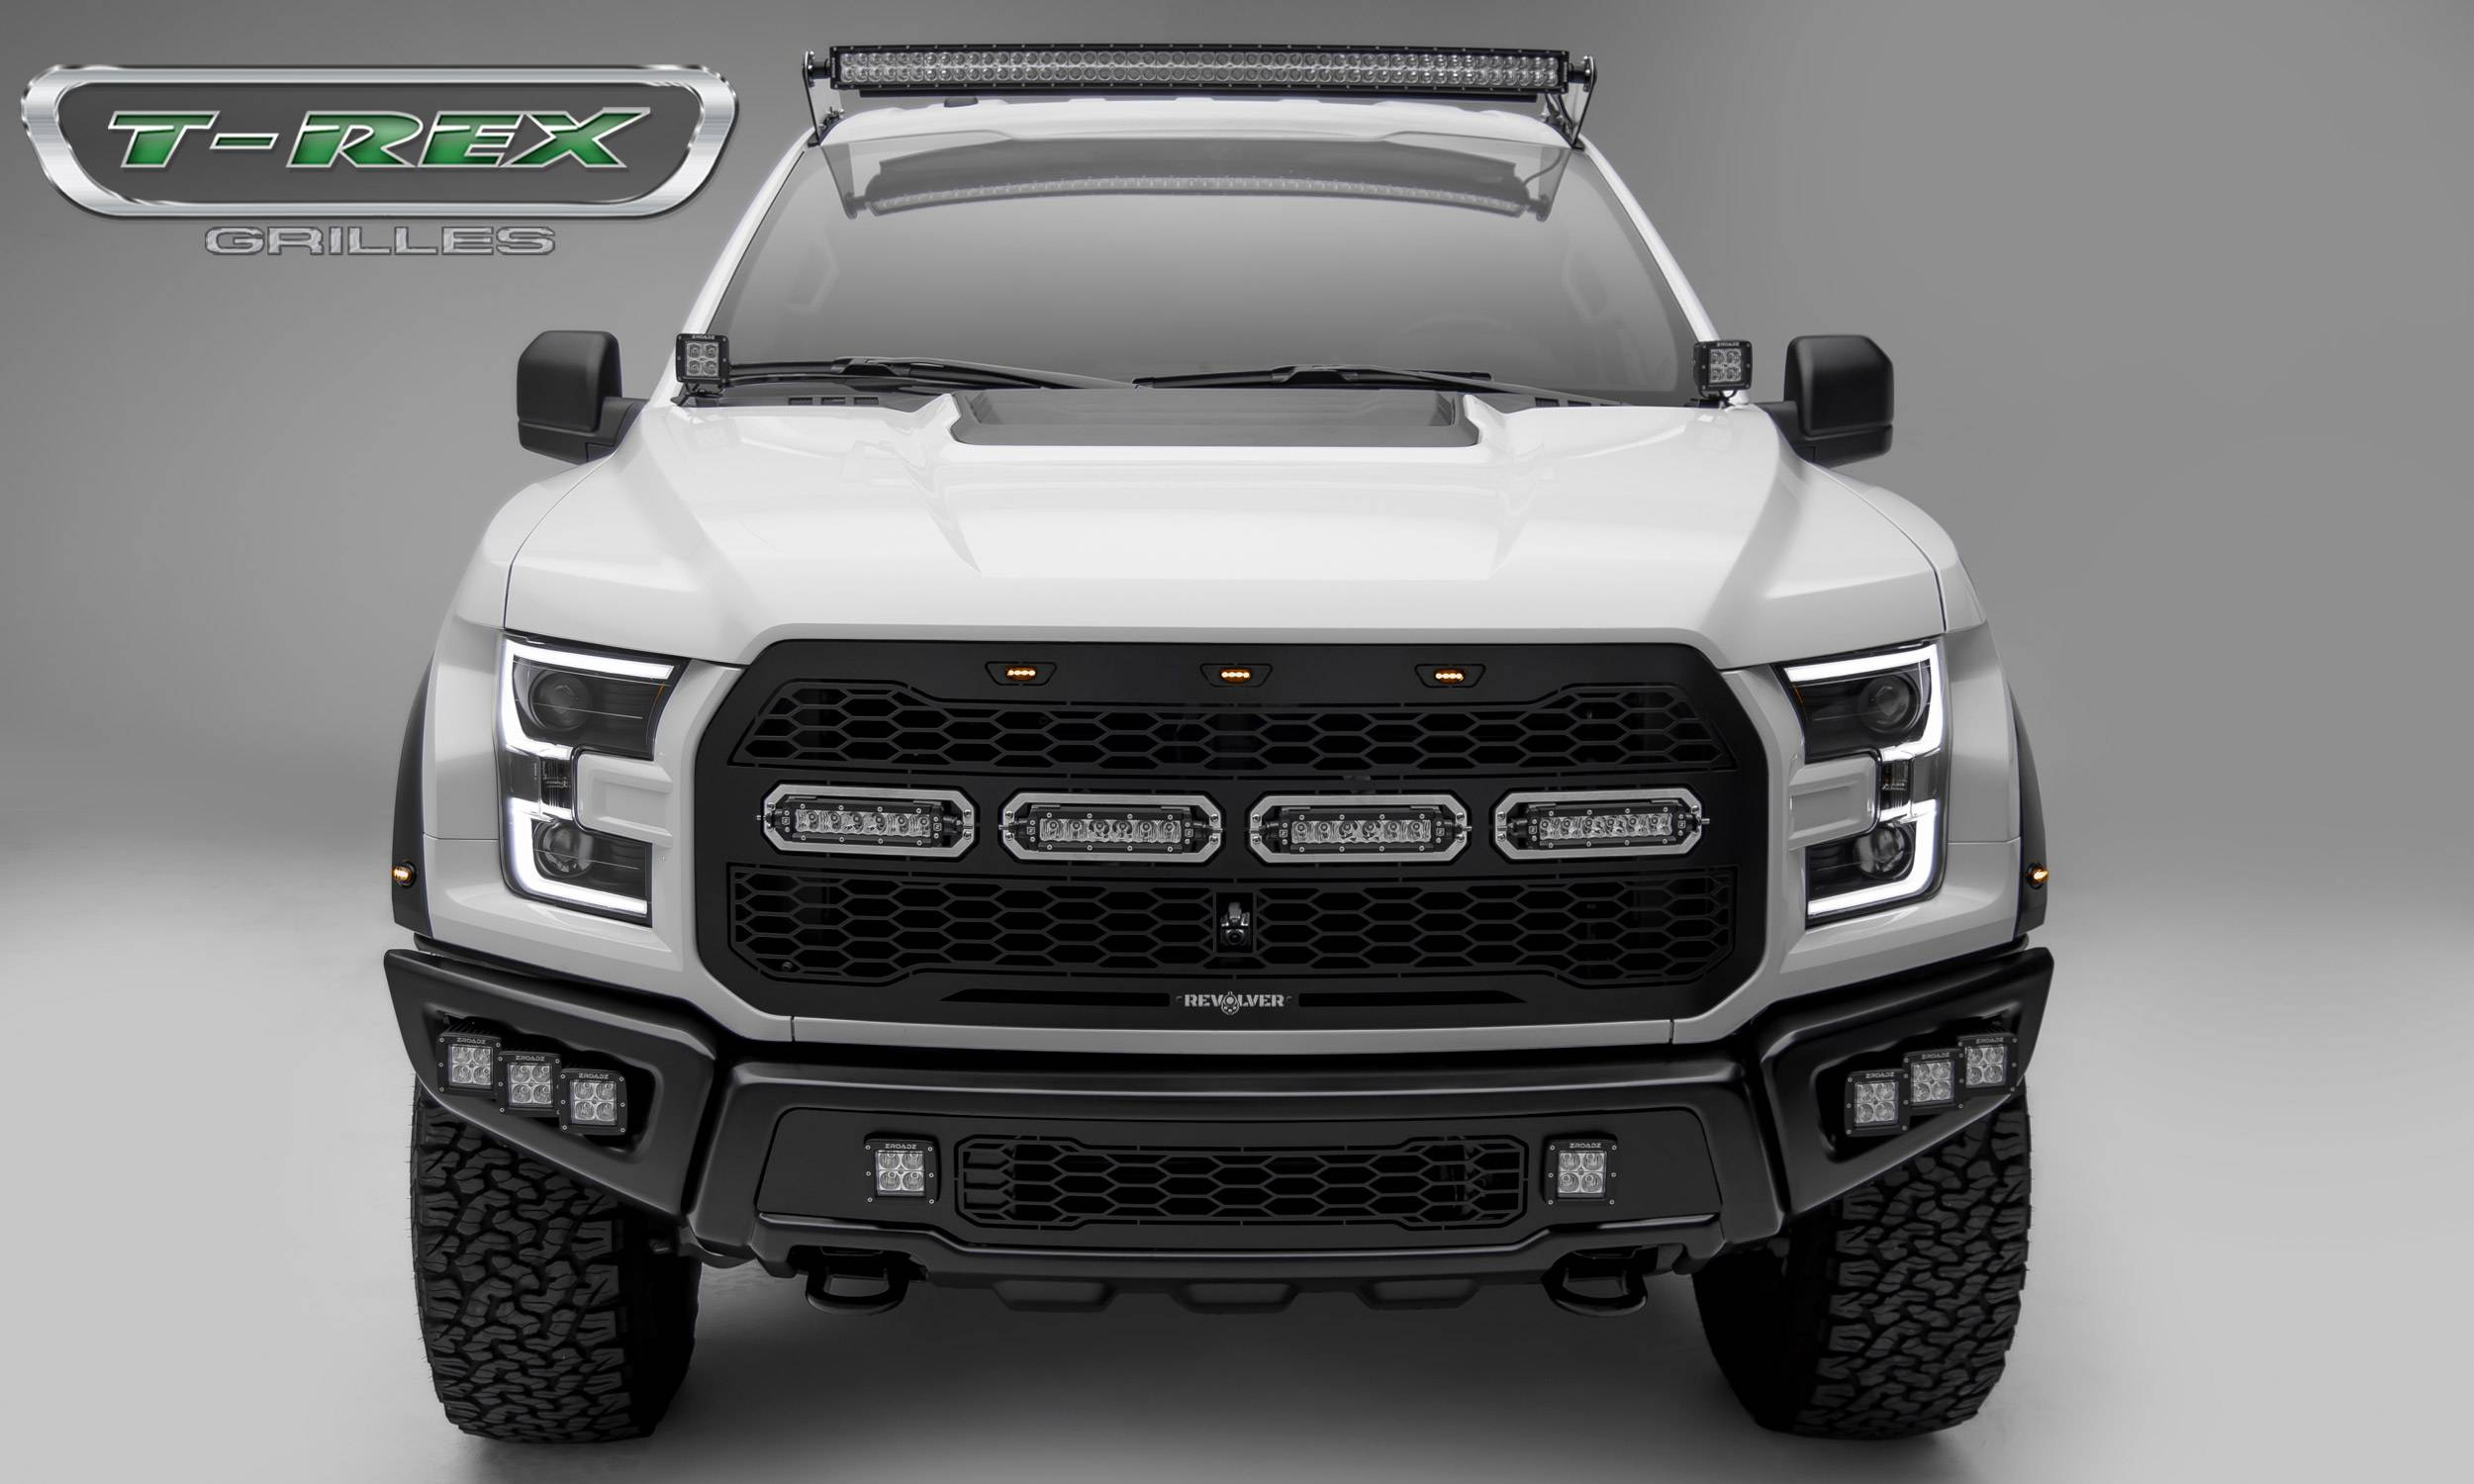 T-REX GRILLES - 2017-2021 F-150 Raptor SVT Revolver Grille, Black, 1 Pc, Replacement, Chrome Studs with (4) 6 Inch LEDs, Fits Vehicles with Camera - PN #6515671